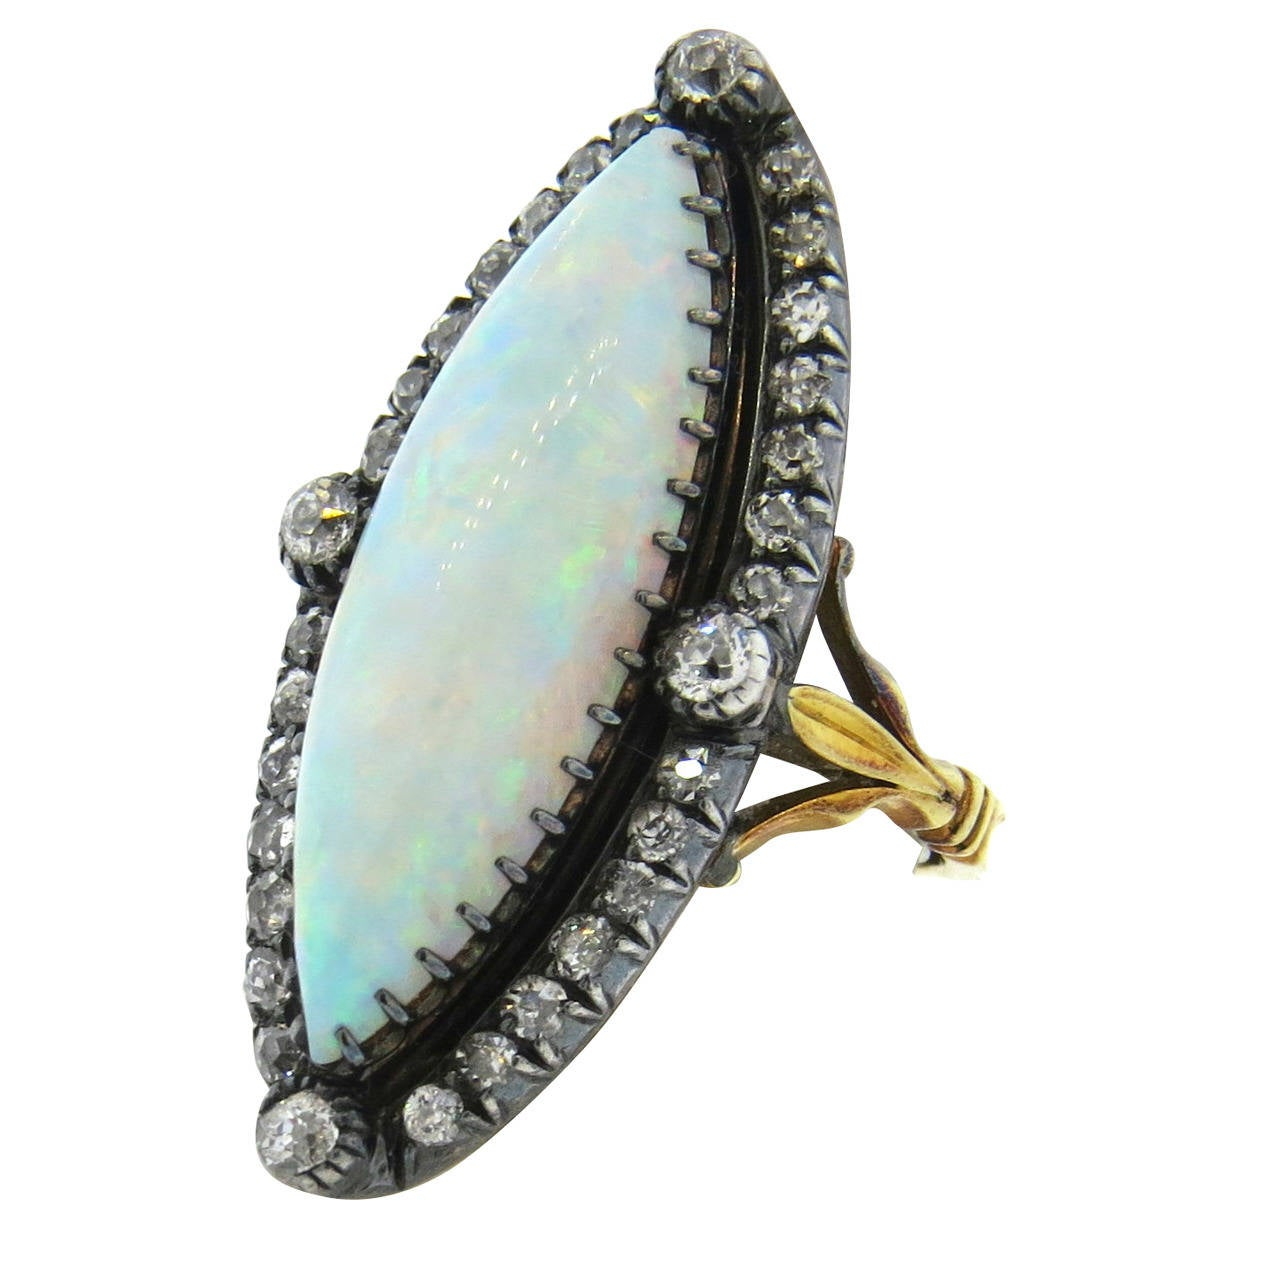 Antique Gold and Silver Opal Diamond Ring